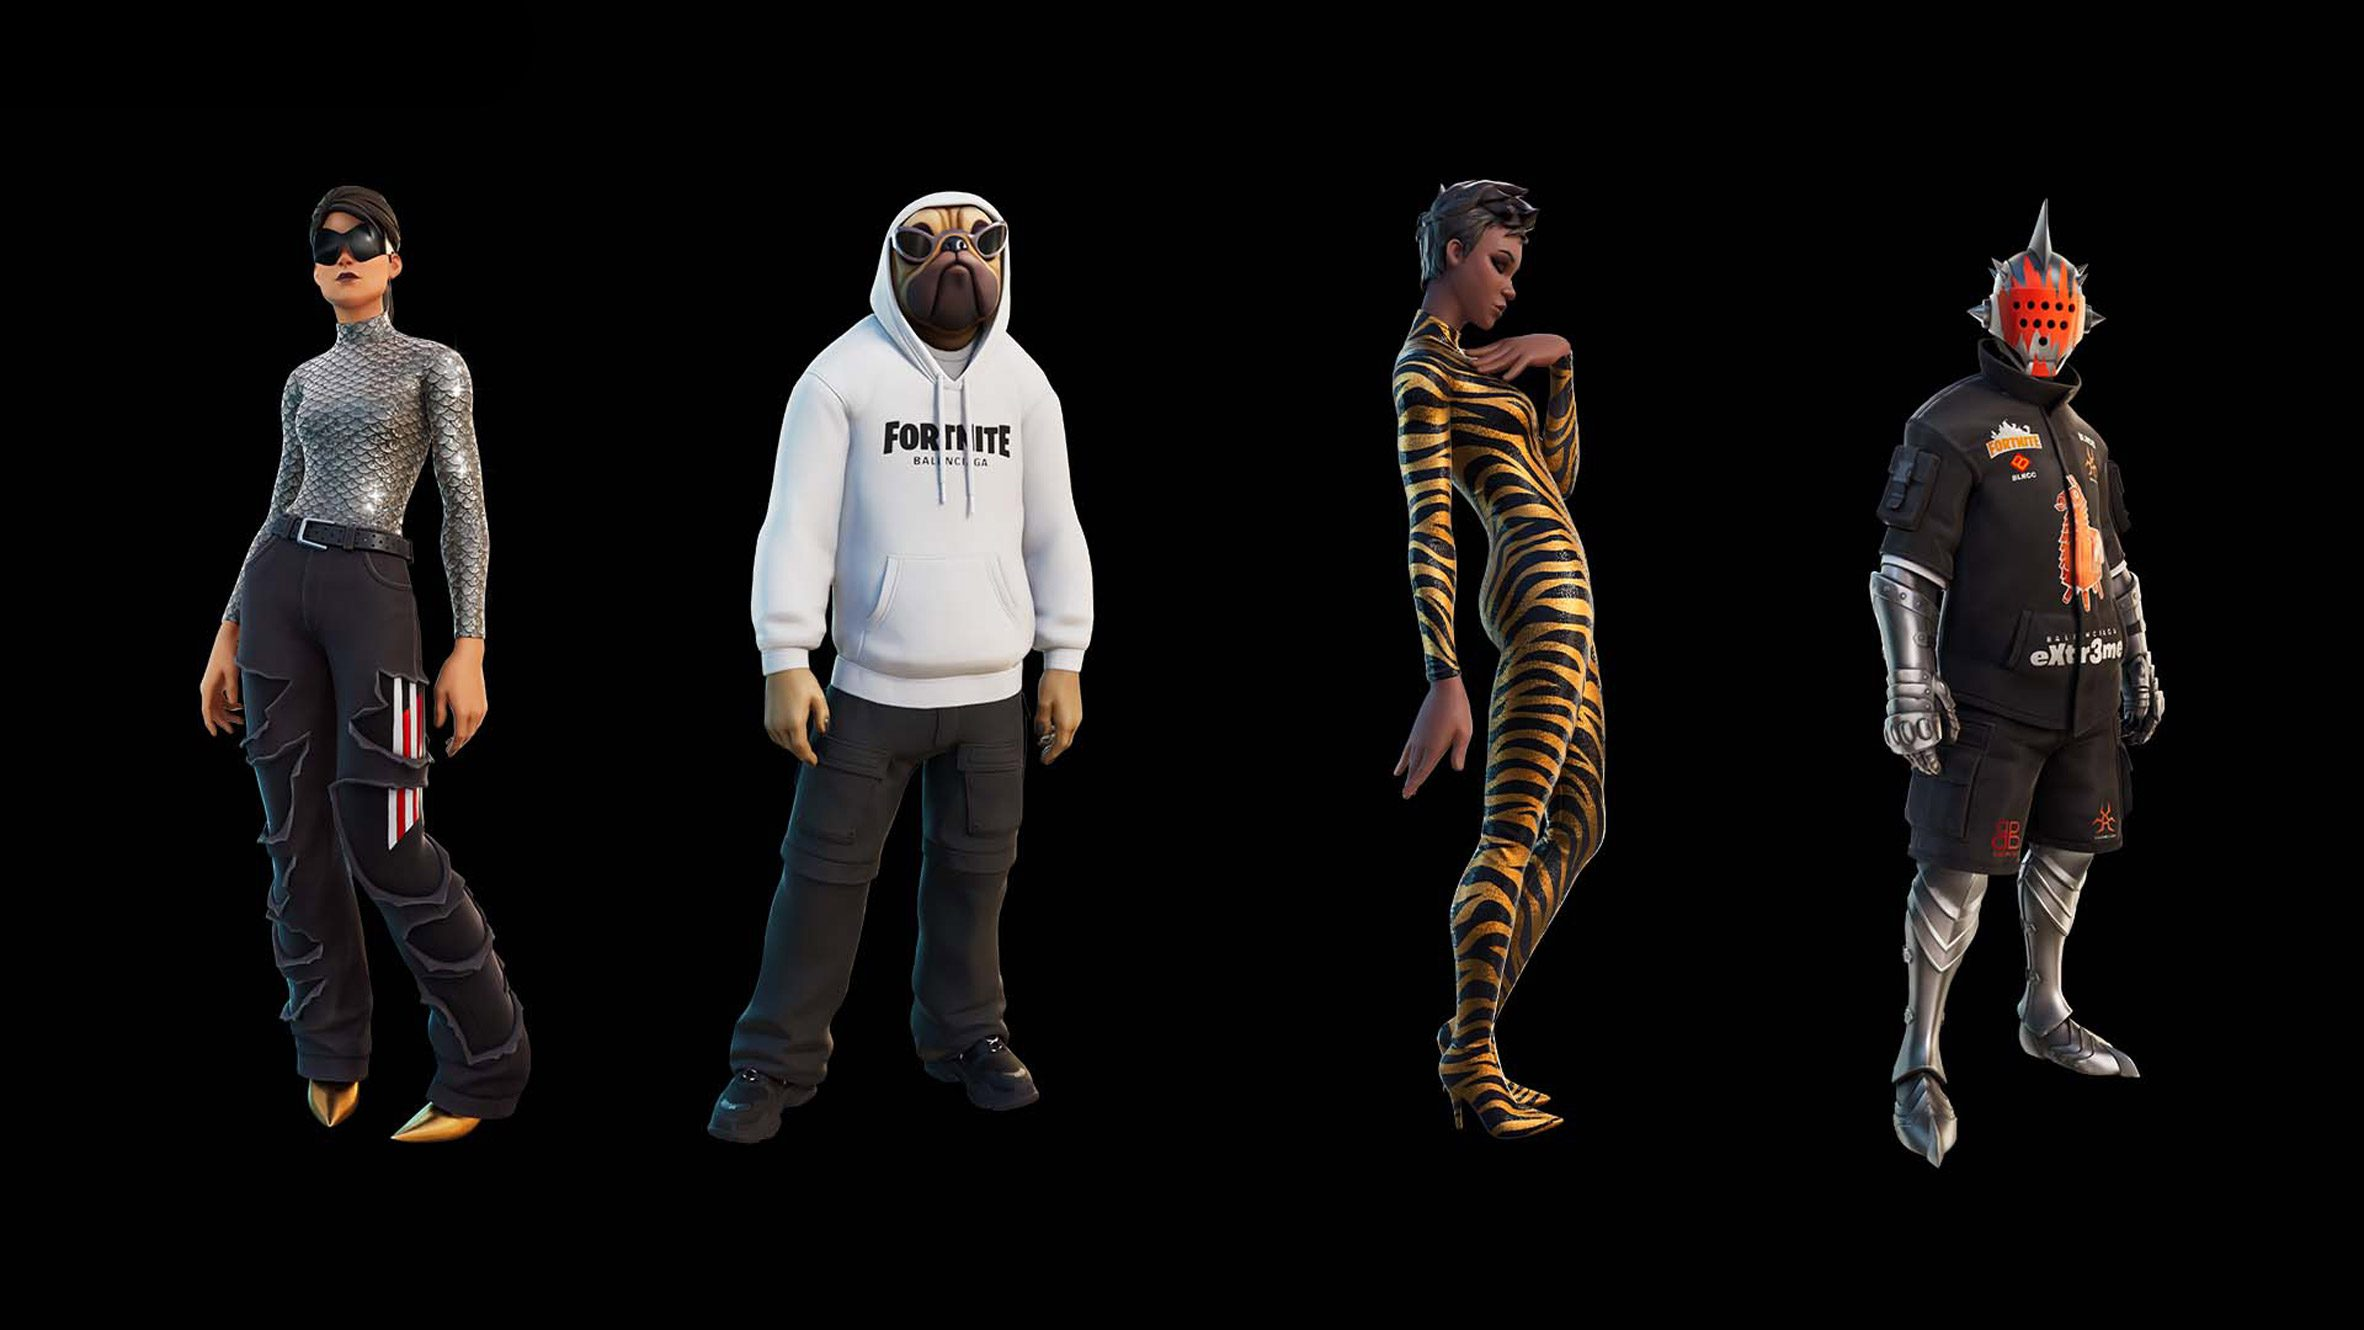 A line up of the Fortnite Balenciaga collection